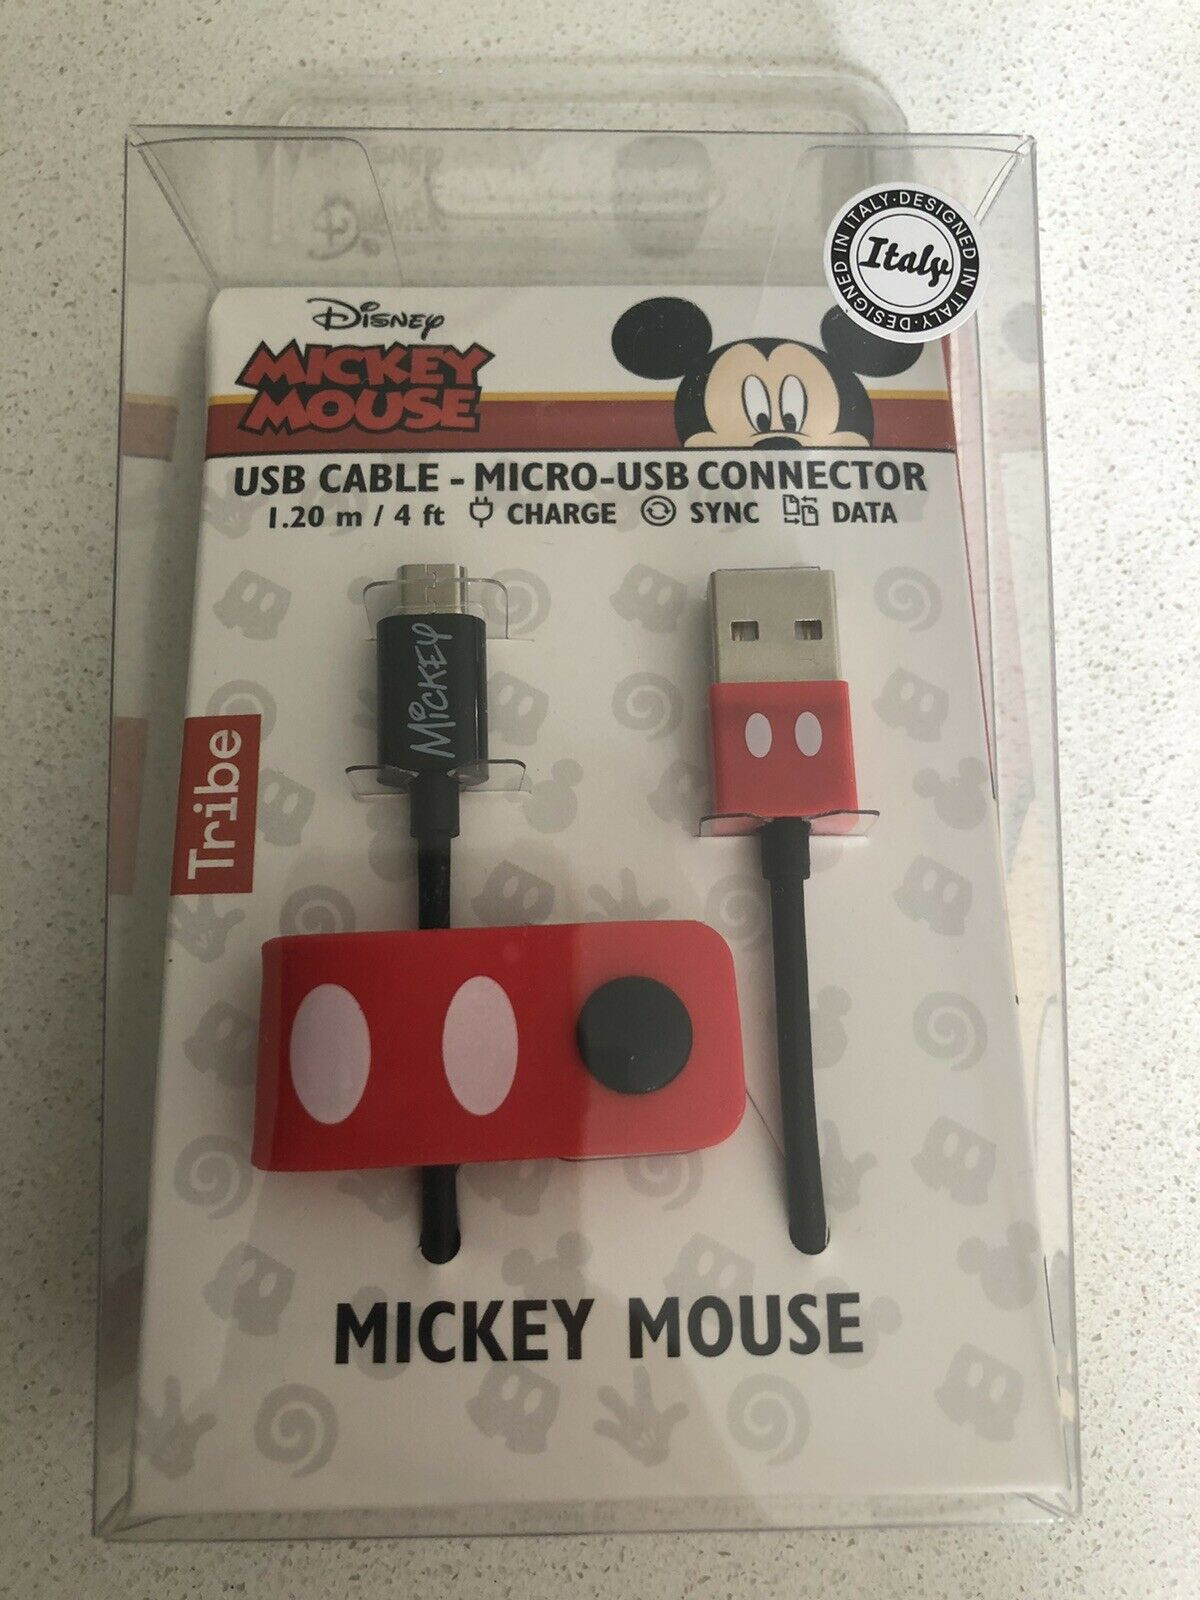 Mickey Mouse Disney USB Cable Micro USB Connector 1.20 M 4 Ft Charge Sync Data